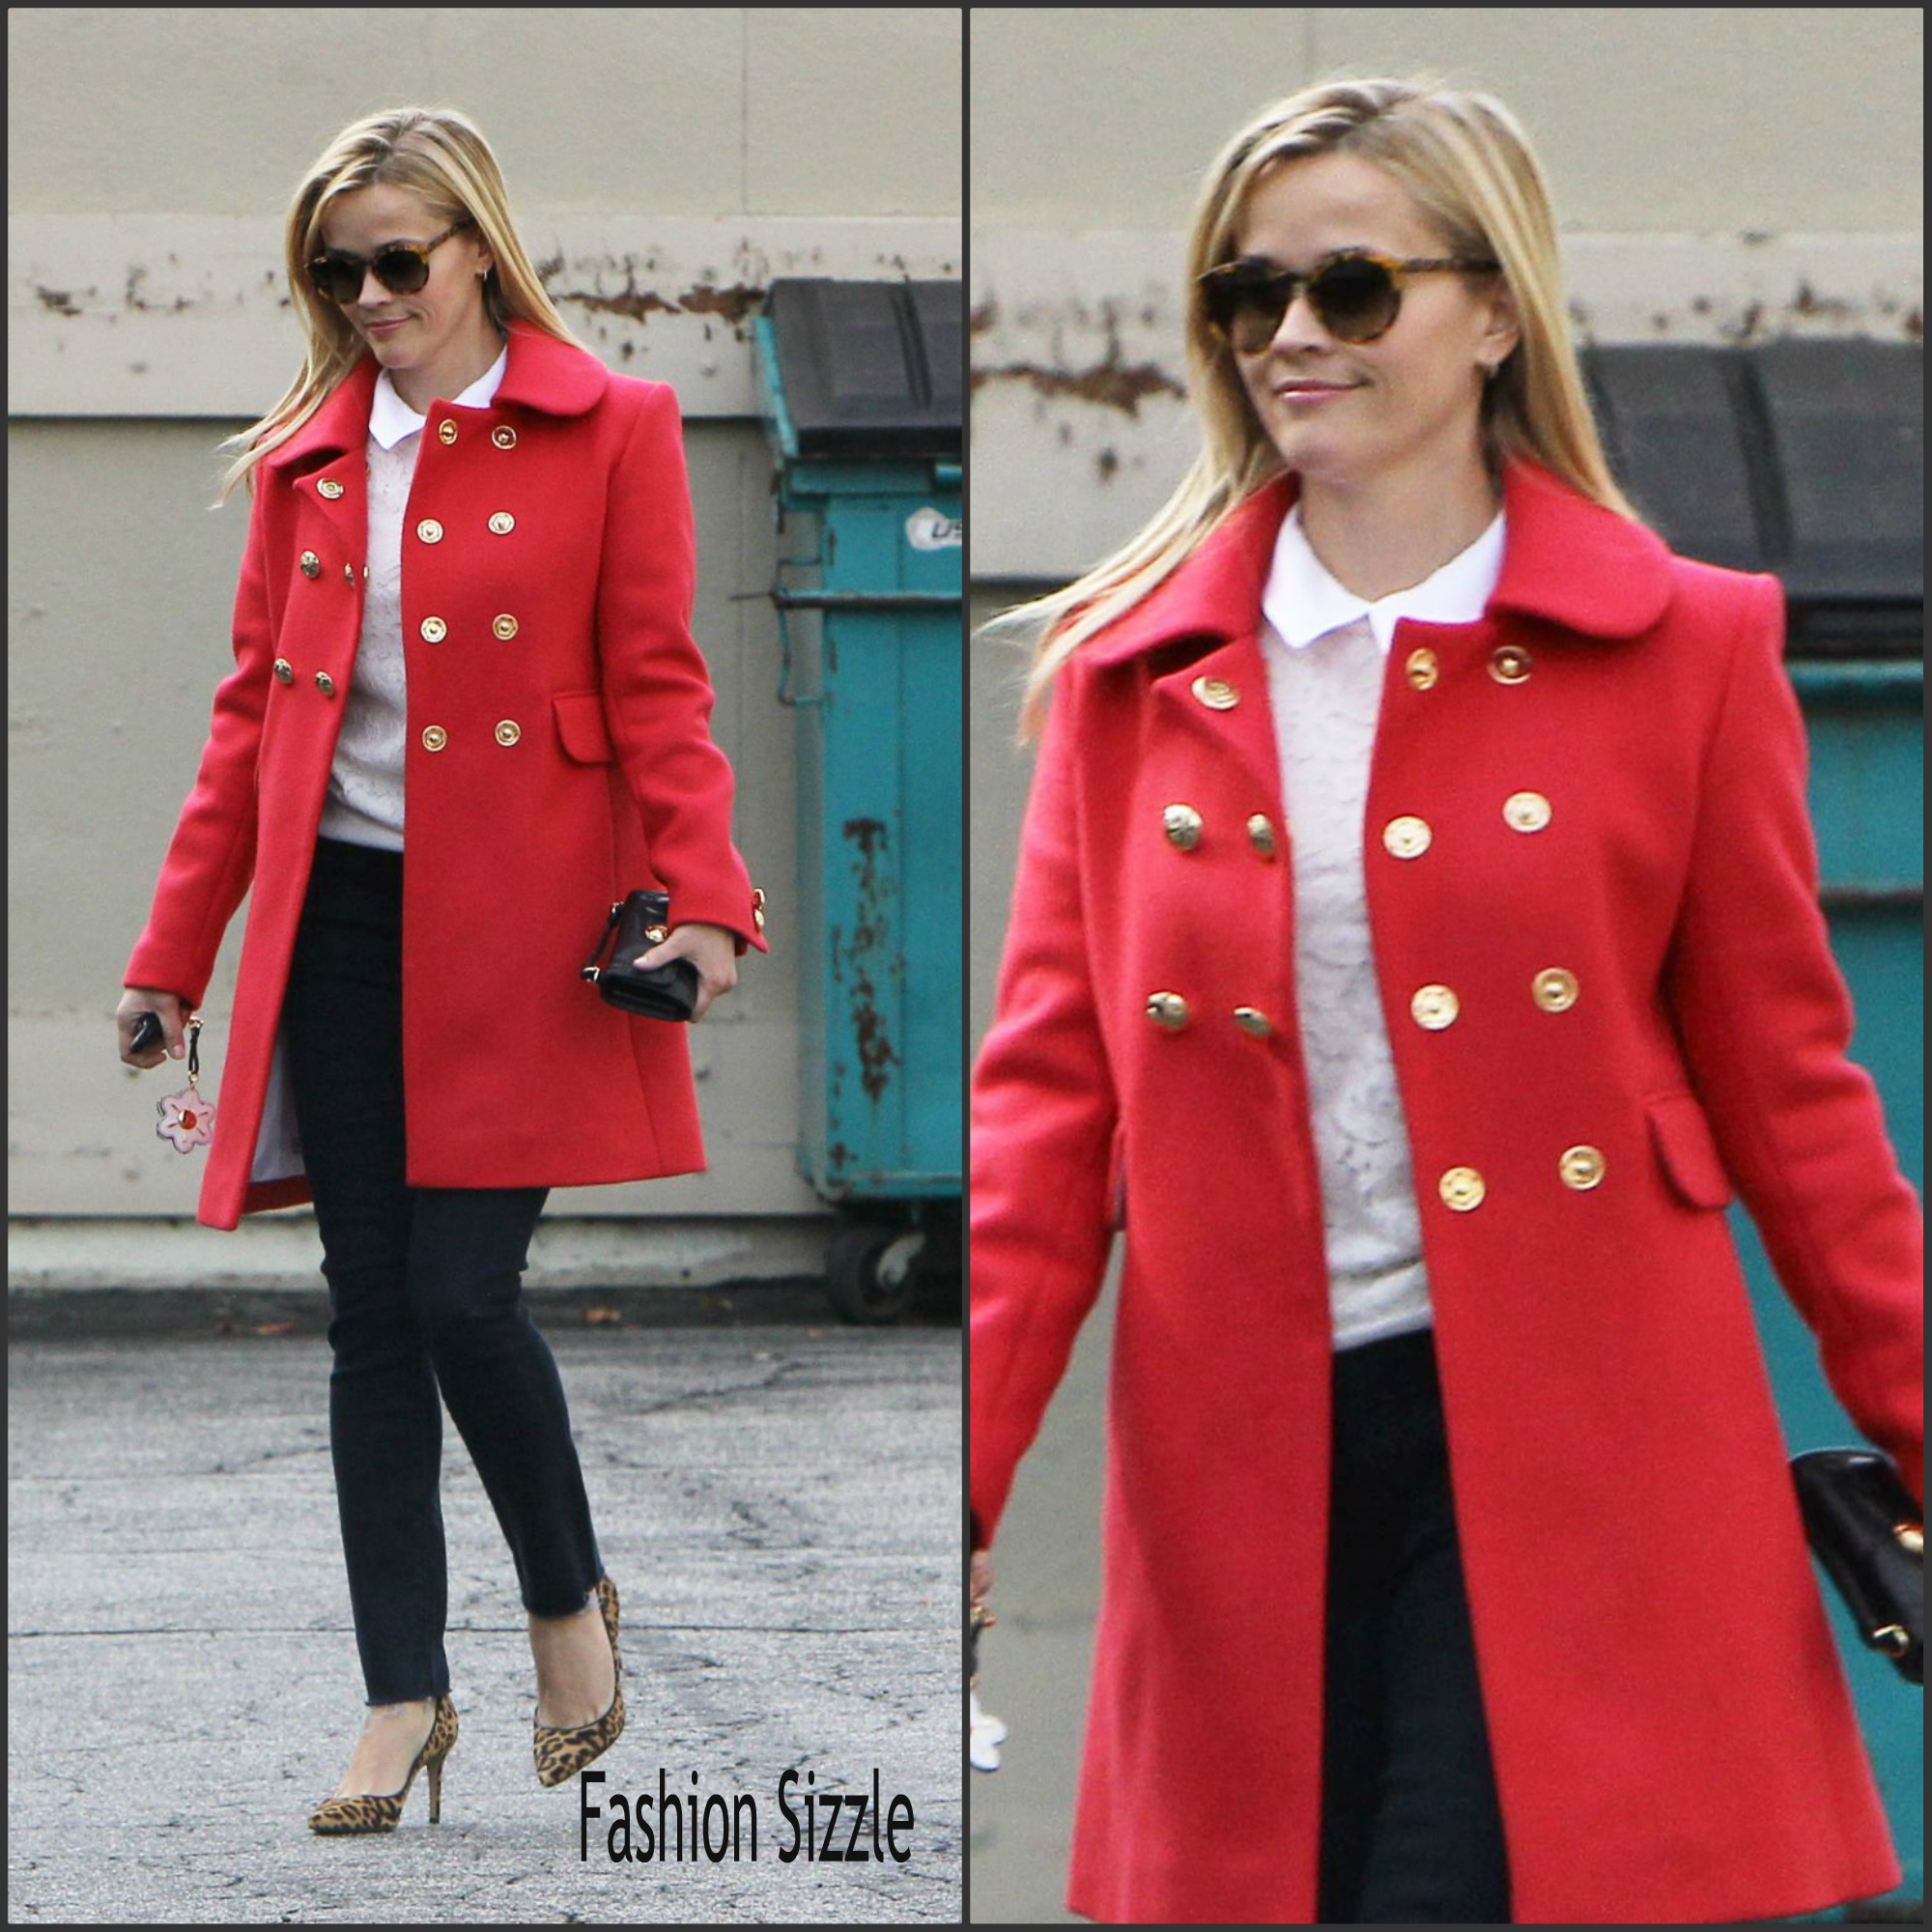 reese-witherspoon-in-draper-james-coat-beverly-hills